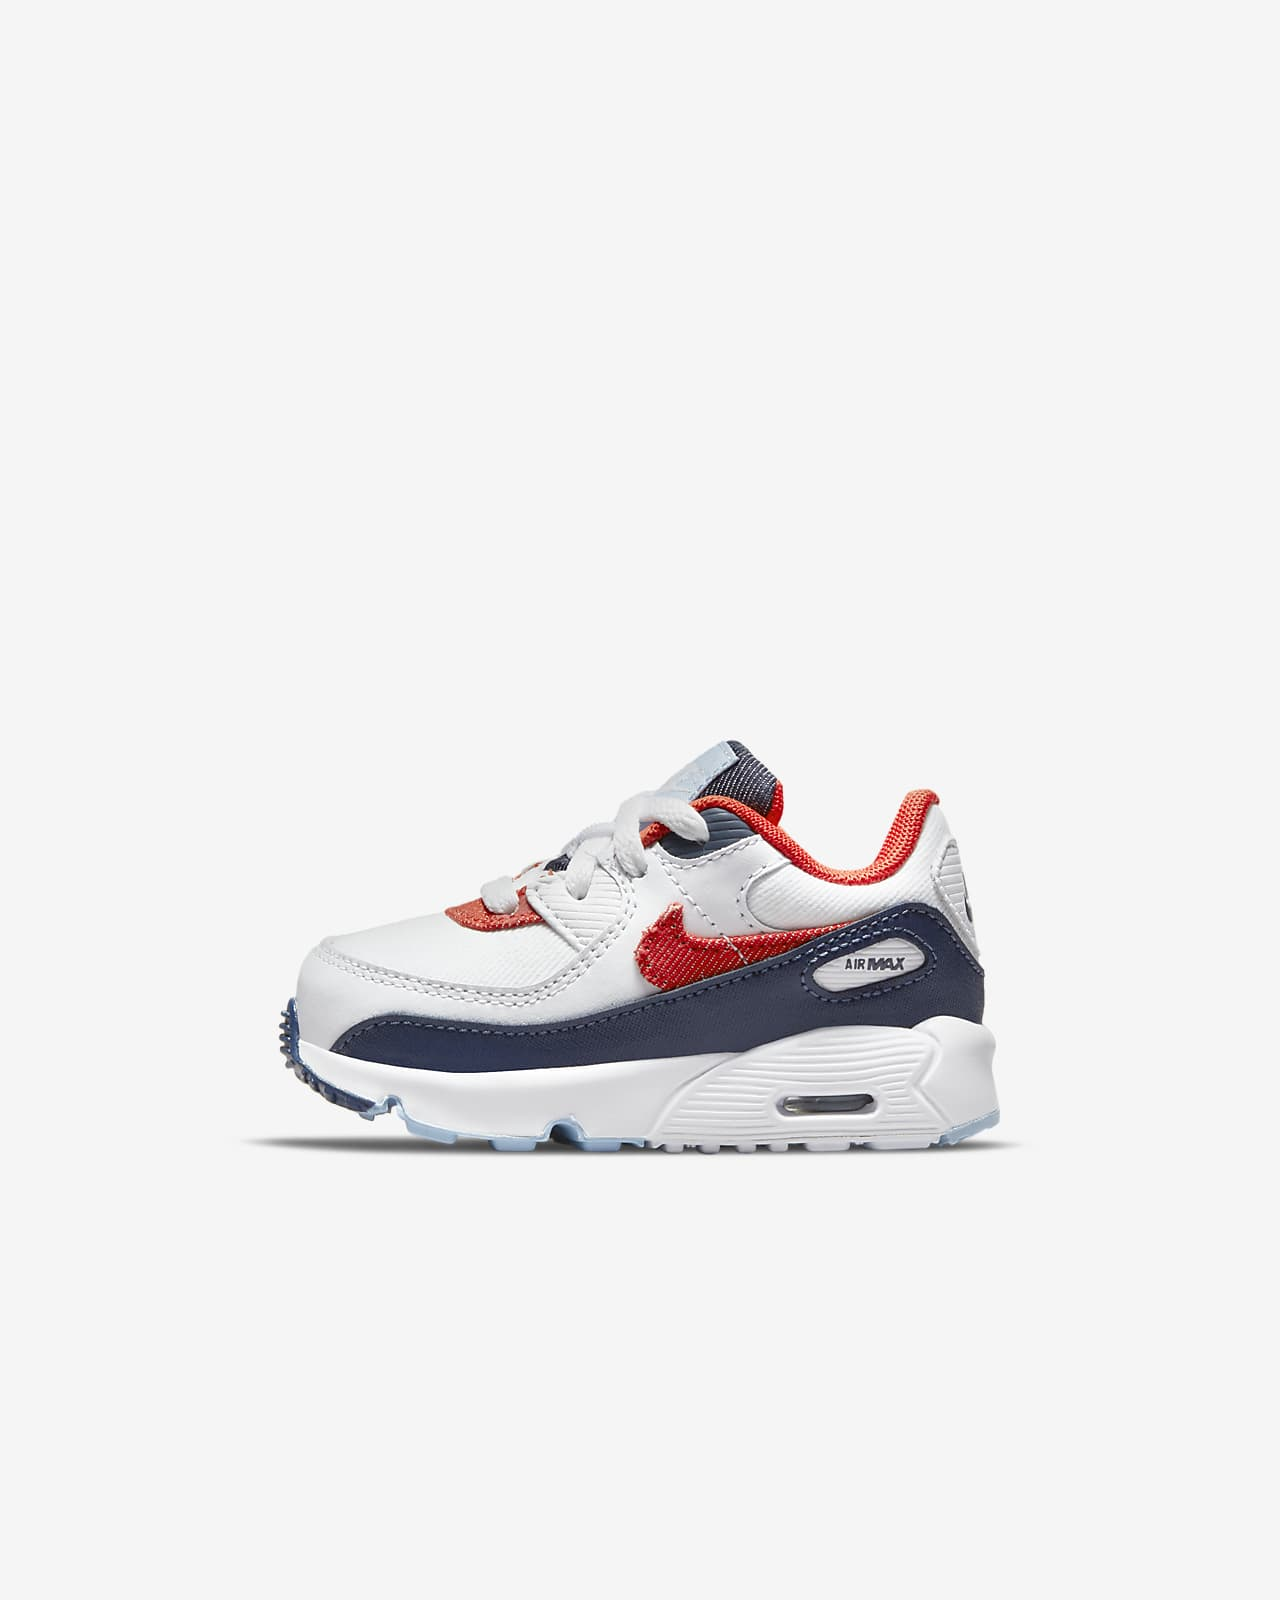 Nike Air Max 90 Baby/Toddler Shoes